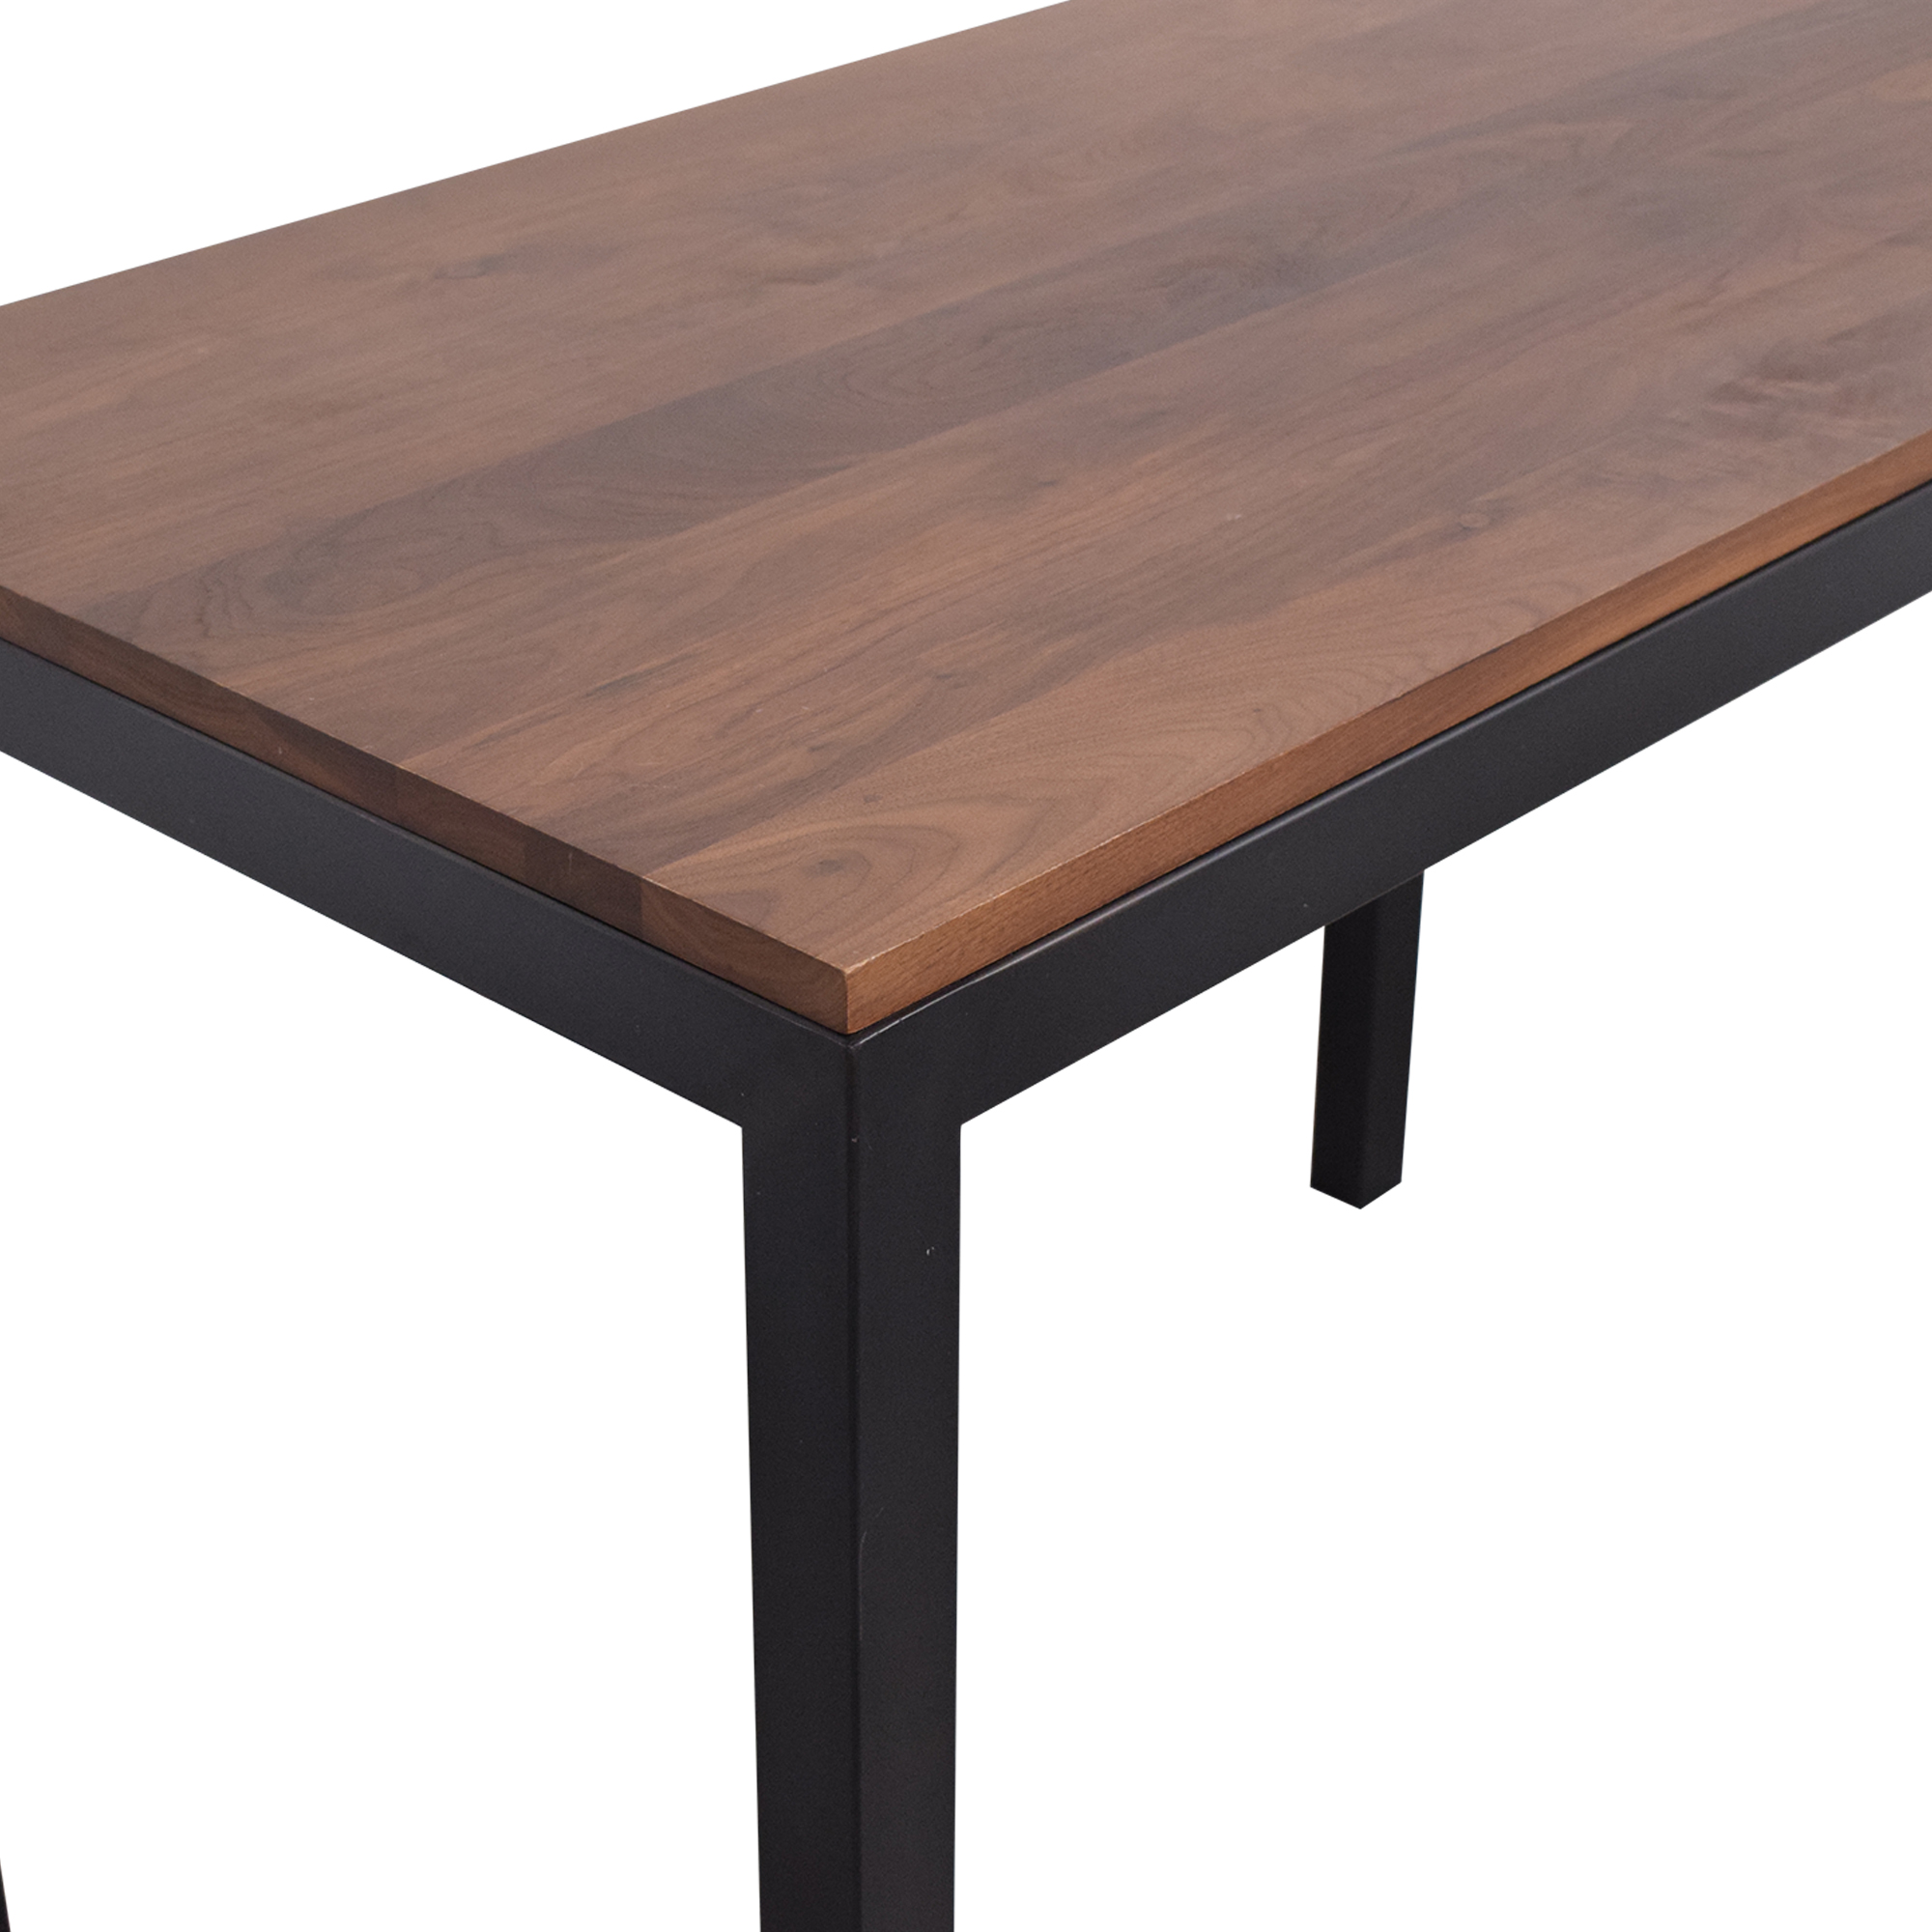 Crate & Barrel Crate & Barrel Custom Parsons Table on sale